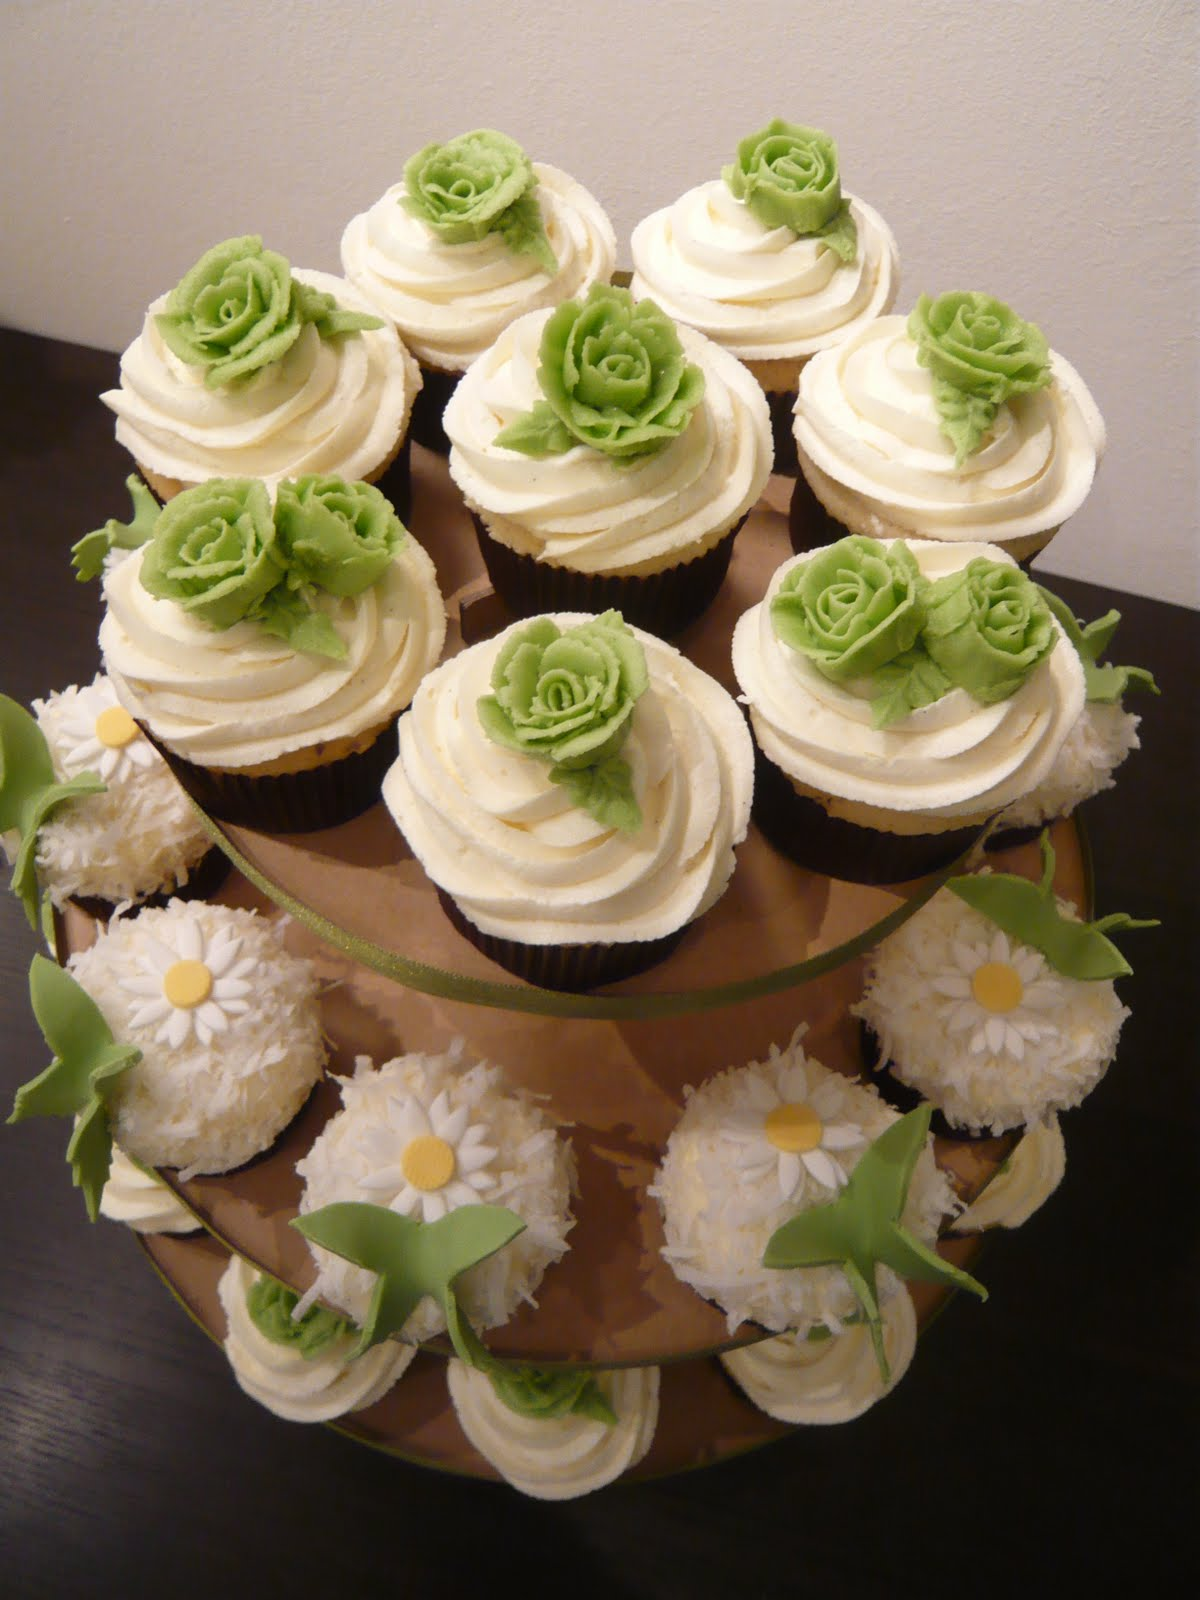 Cupcake Design For Wedding : Sift: Bespoke wedding cupcake designs!